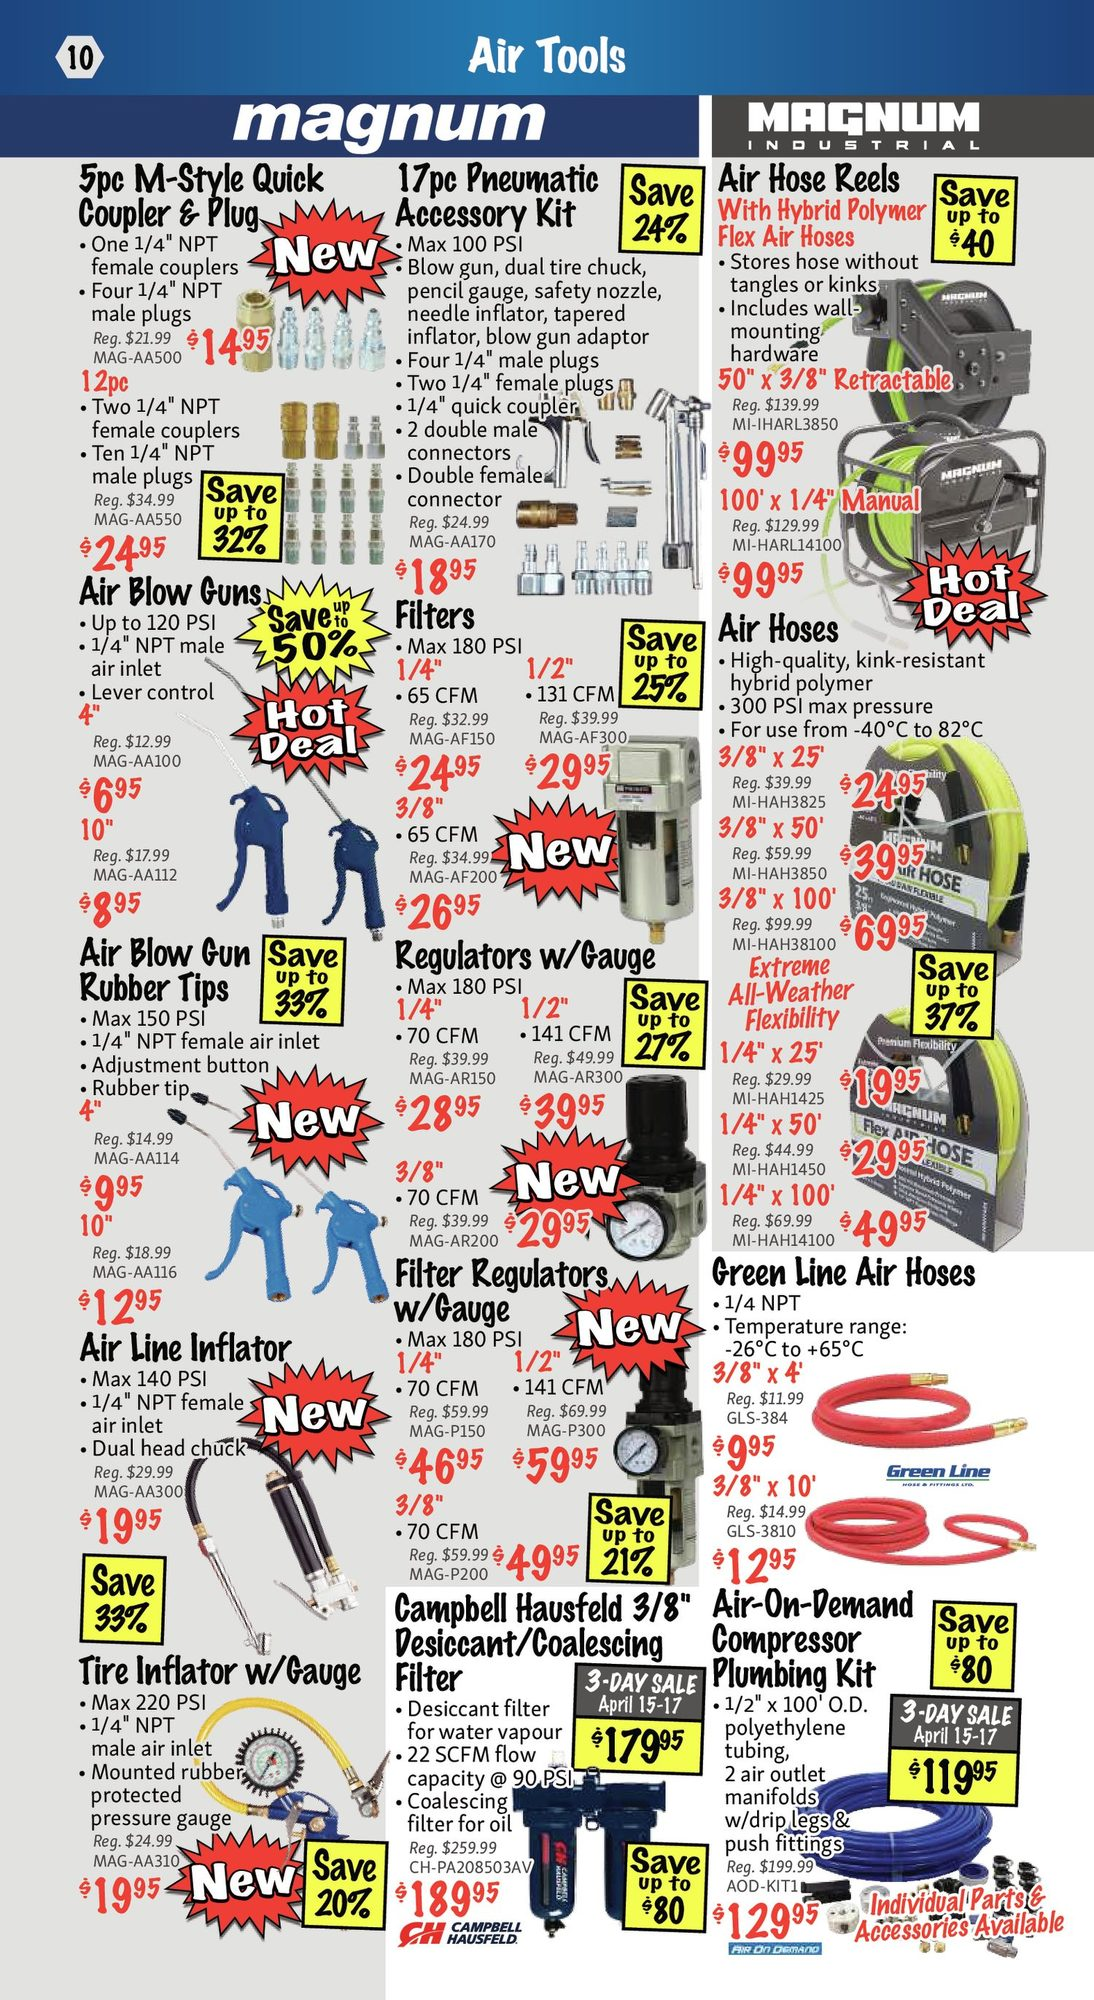 KMS Tools - Hand Tools, Air Tools & Compressor Sale - Page 10